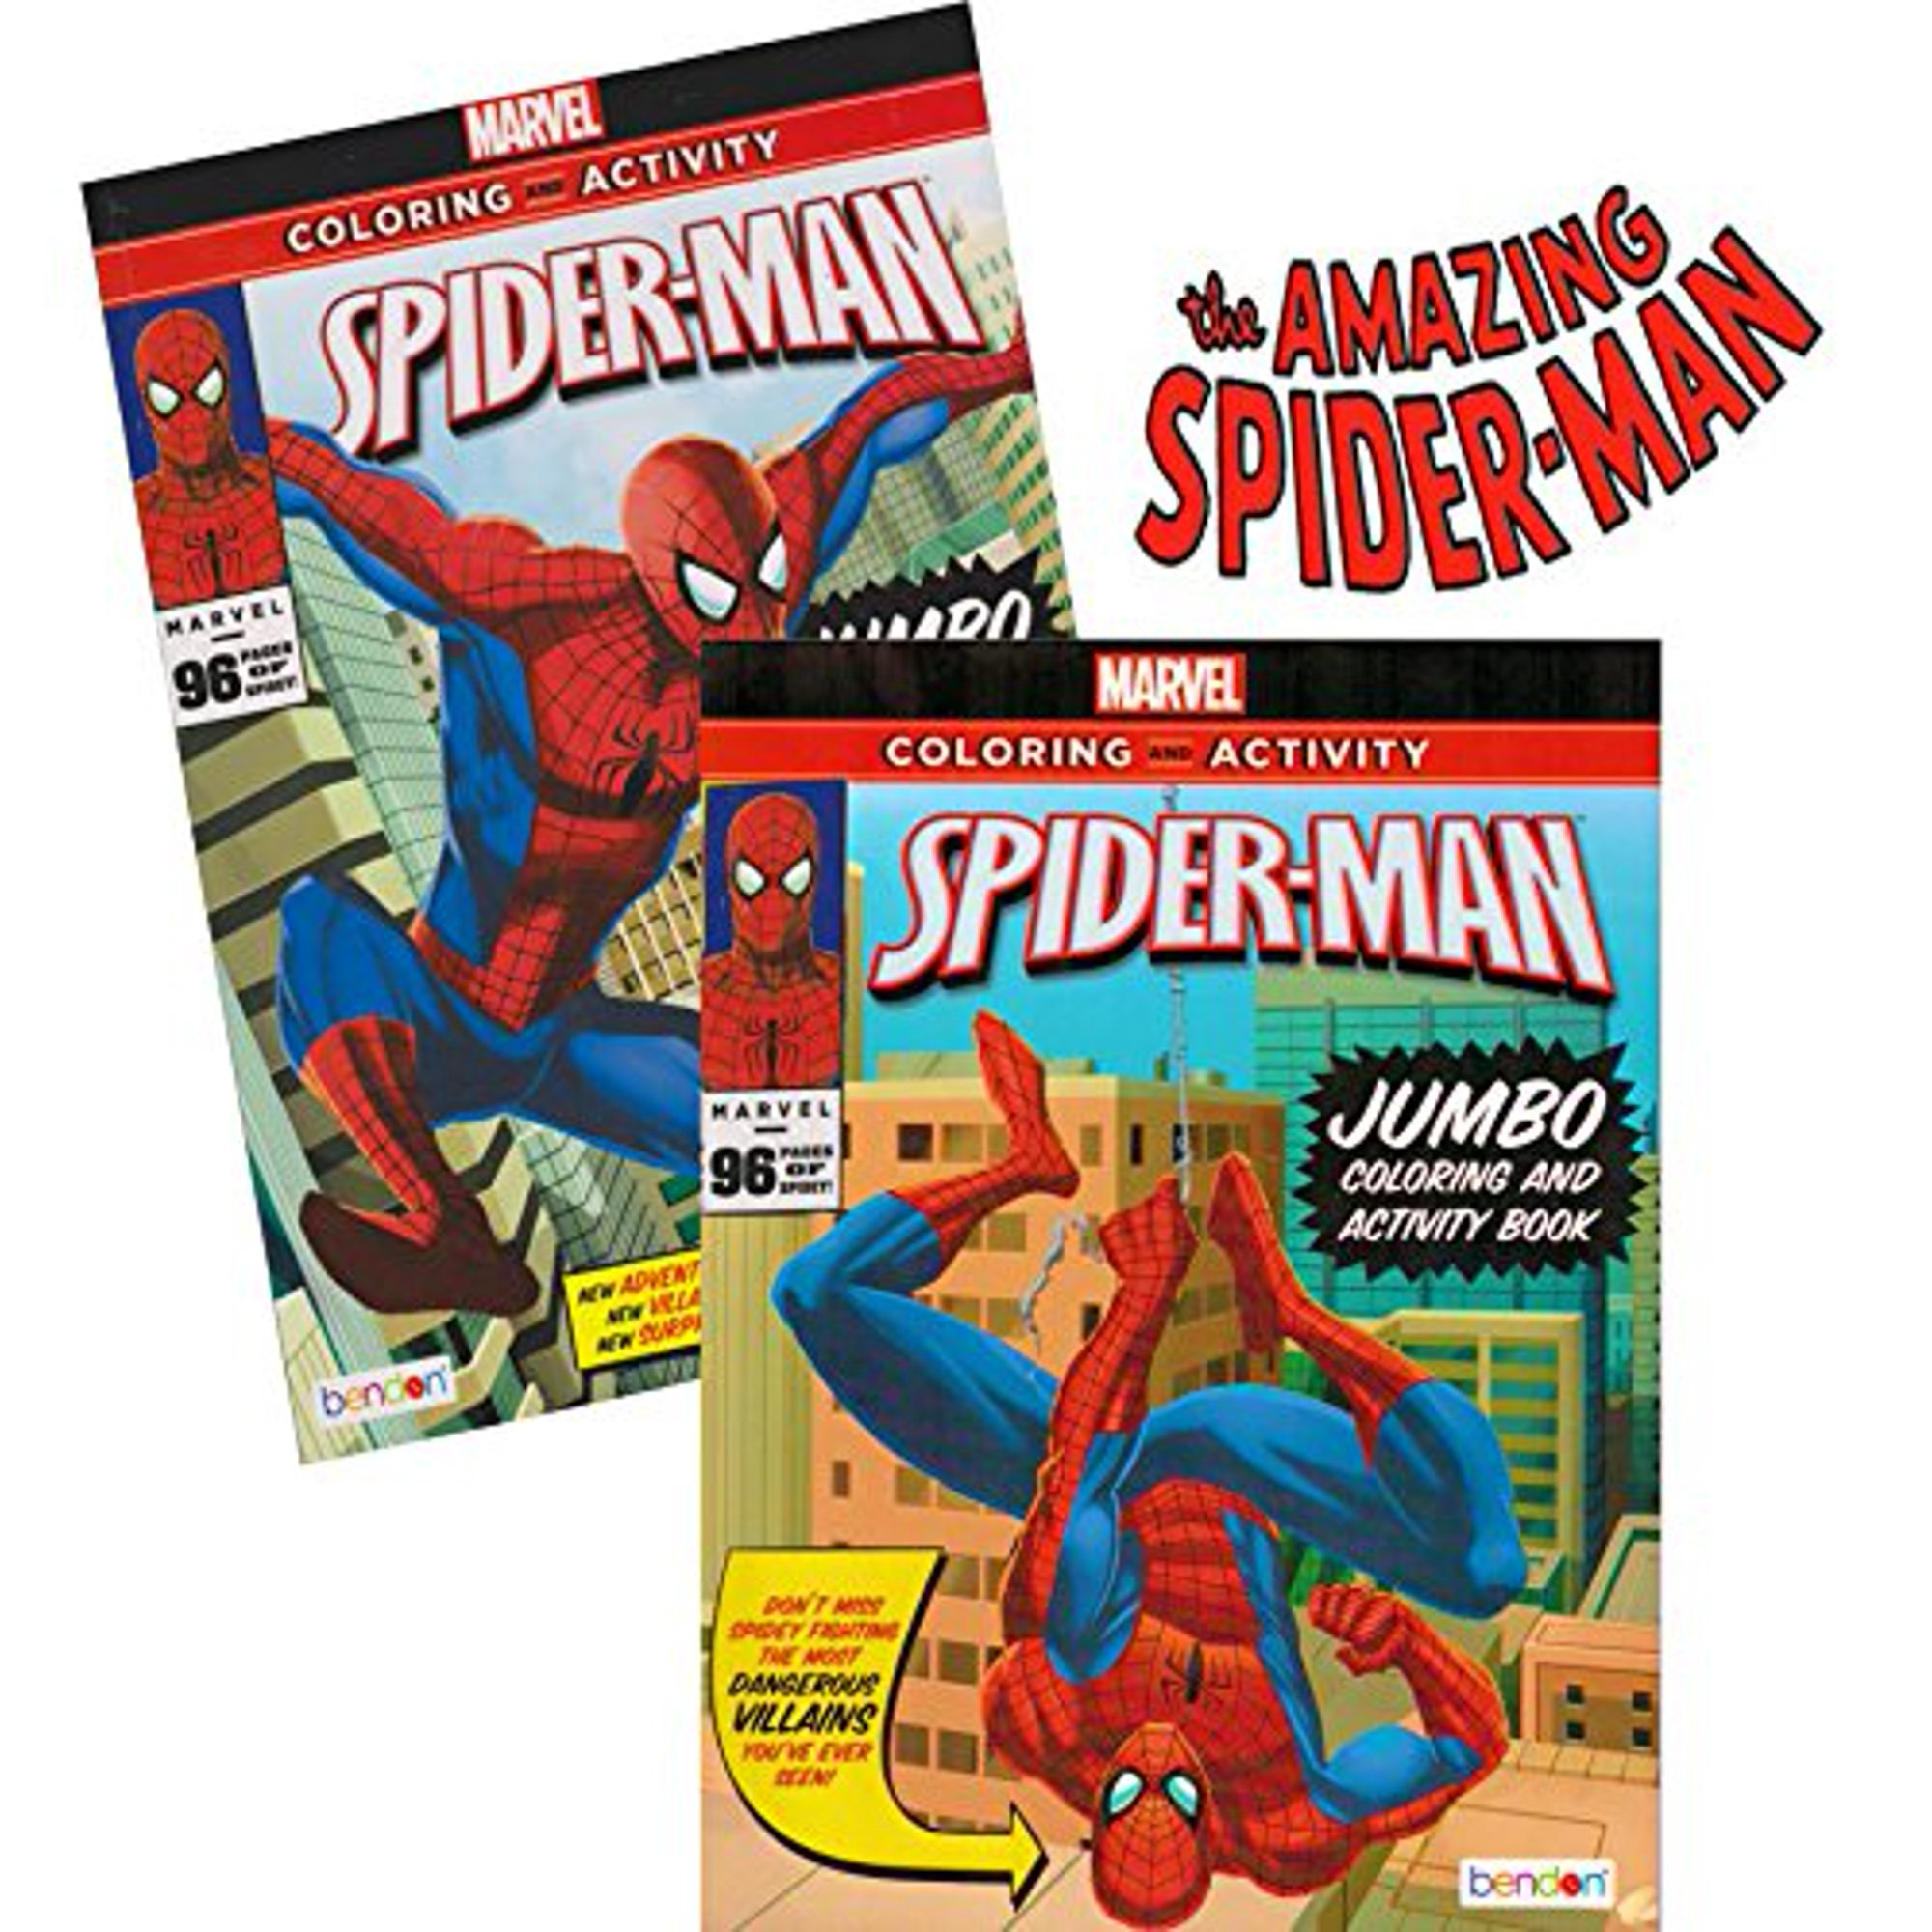 Spider-man Coloring & Activity Book Set (2 Books ~ 96 pgs each) by Marvel  Comics